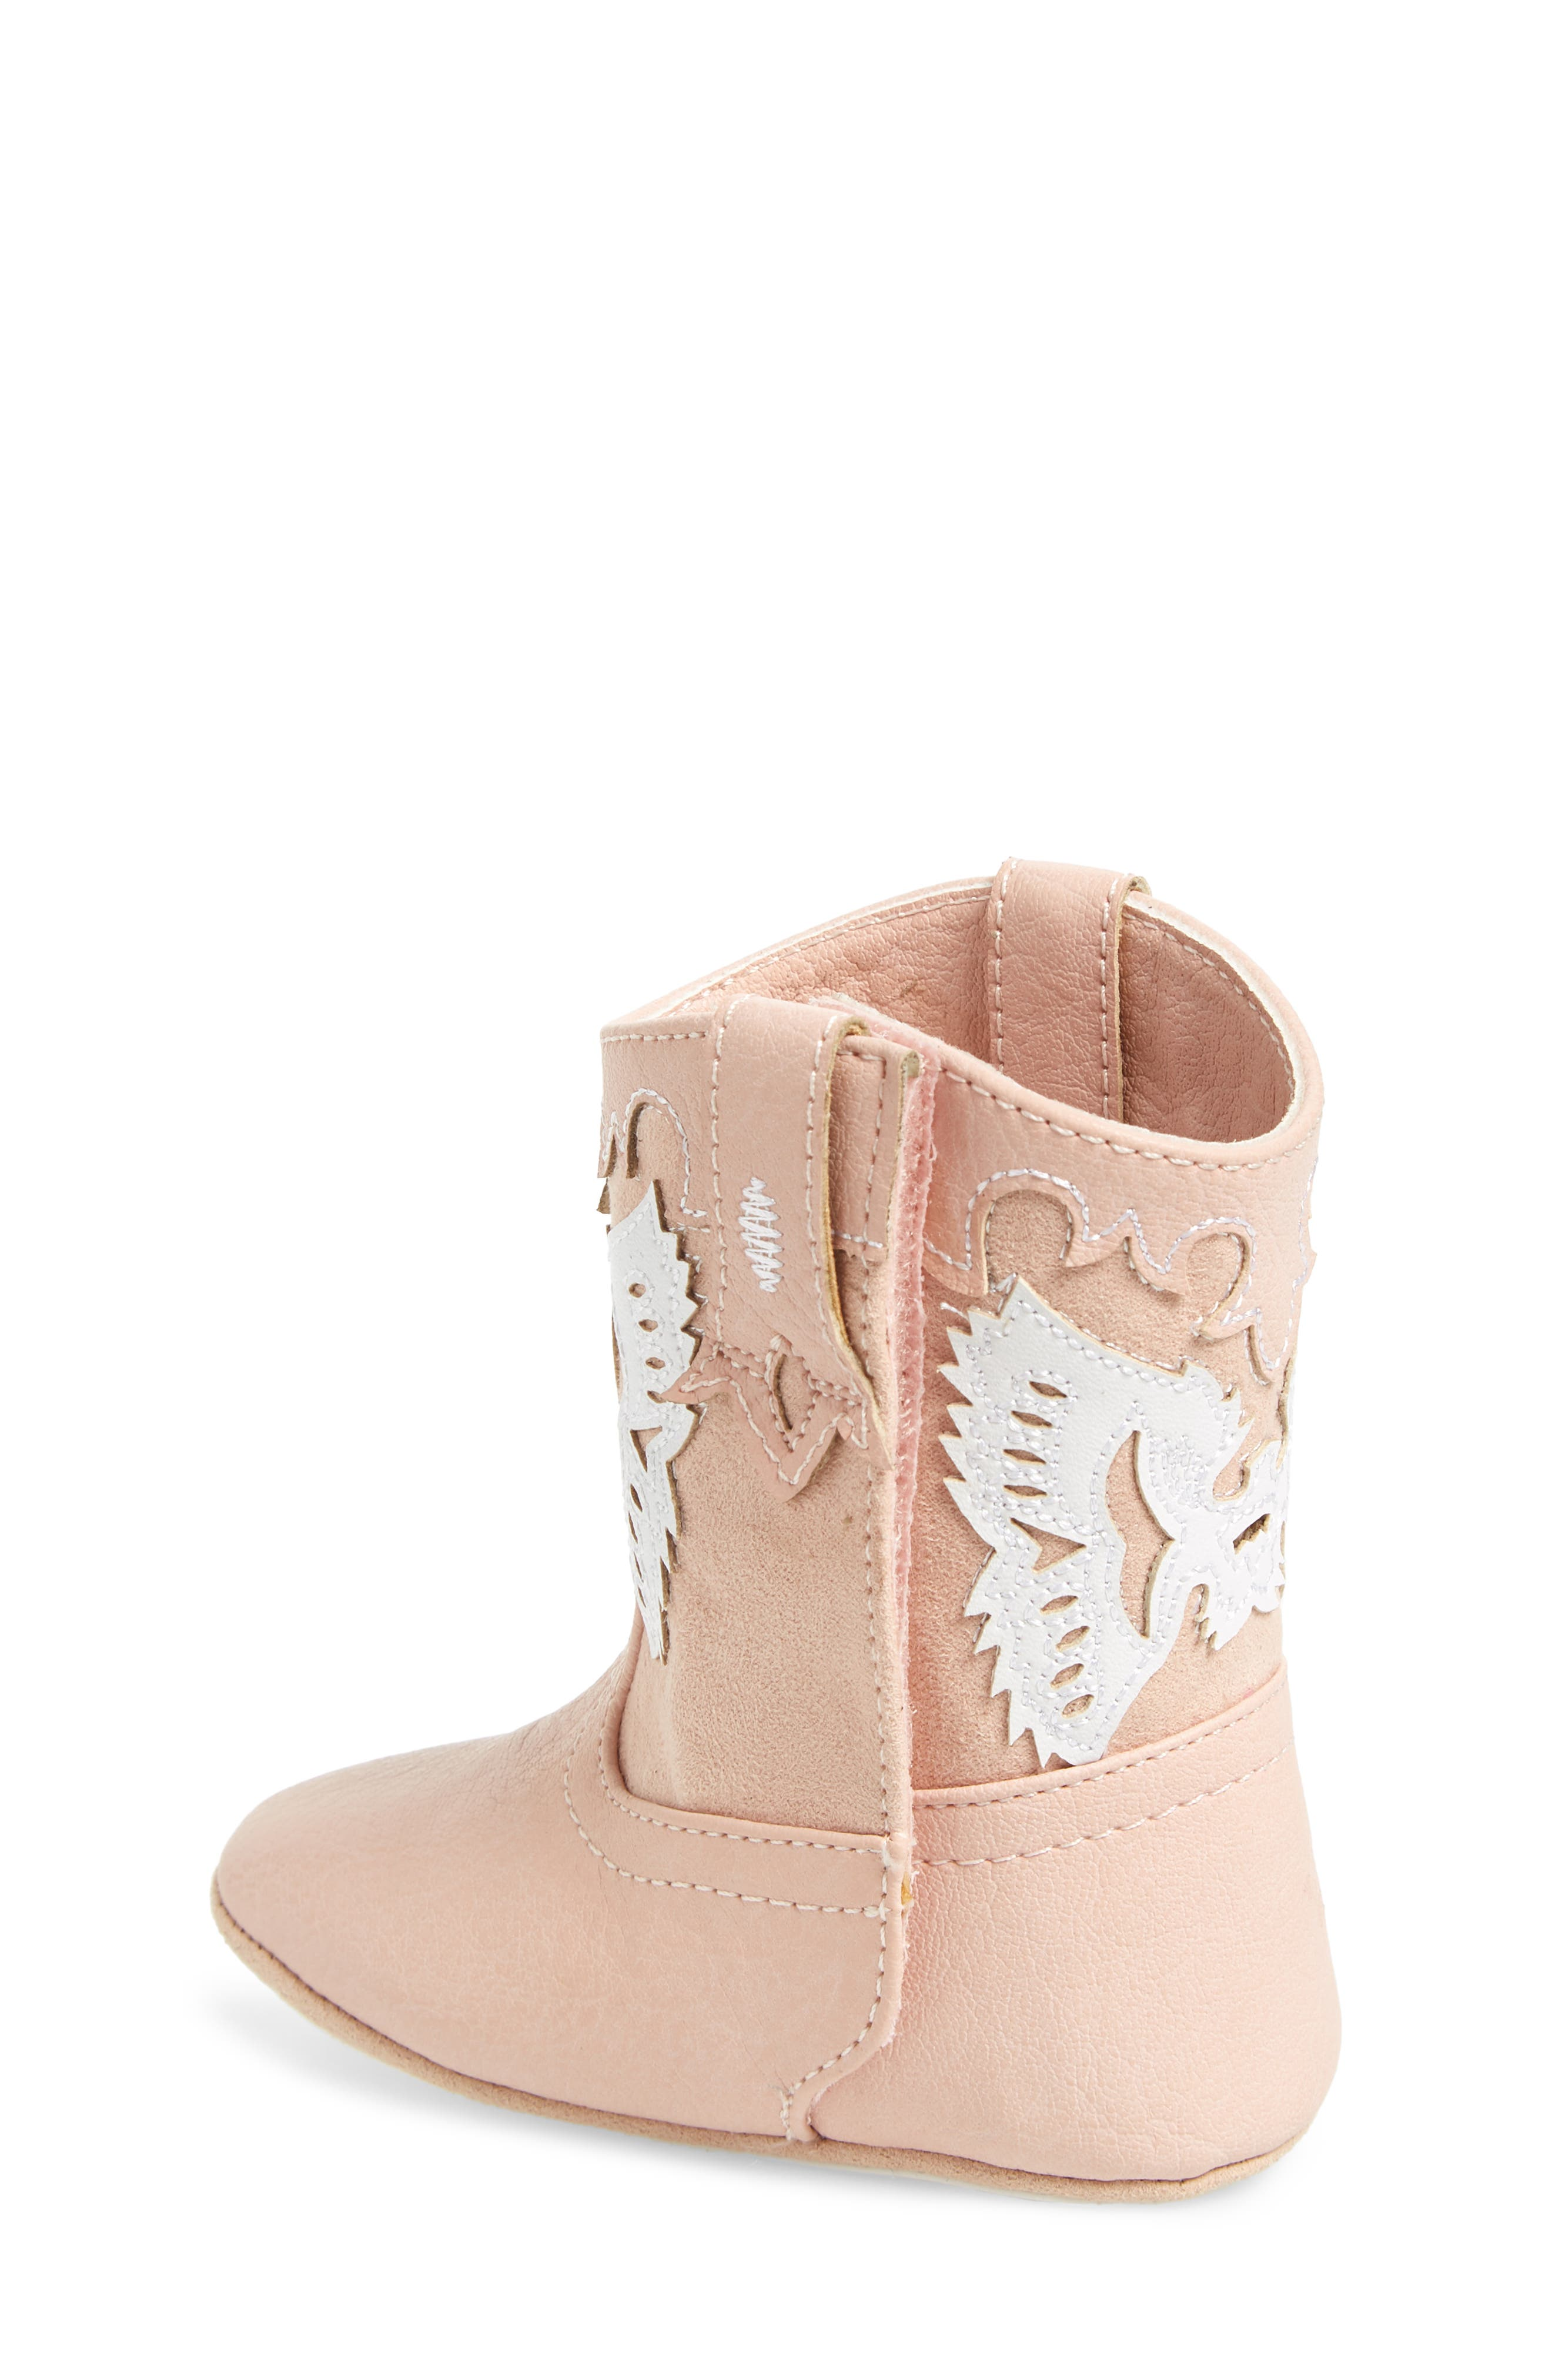 Baby Firebird Western Crib Bootie,                             Alternate thumbnail 2, color,                             Baby Pink